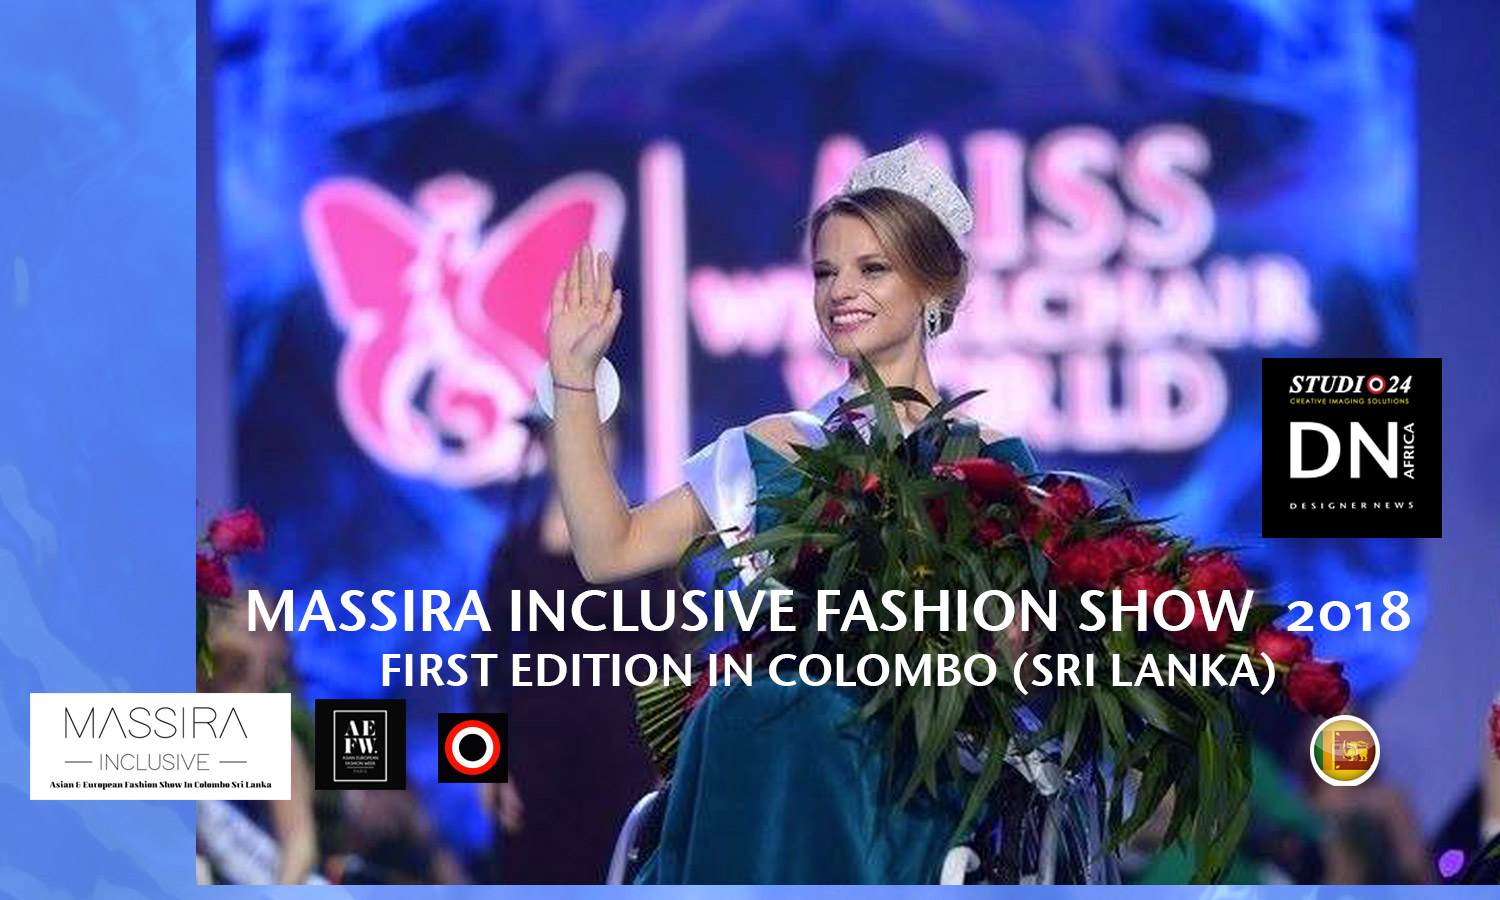 AFRICAN FASHION STYLE MAGAZINE- MASSIRA INCLUSIVE 2018 1st EDITION - ORGANIZER Studio FDO by Rex Christy Fernando - Colombo - Road Marine Drive Skri Lanka -DN AFRICA - STUDIO 24 NIGERIA - Asian & European Fashion Week in Colombo